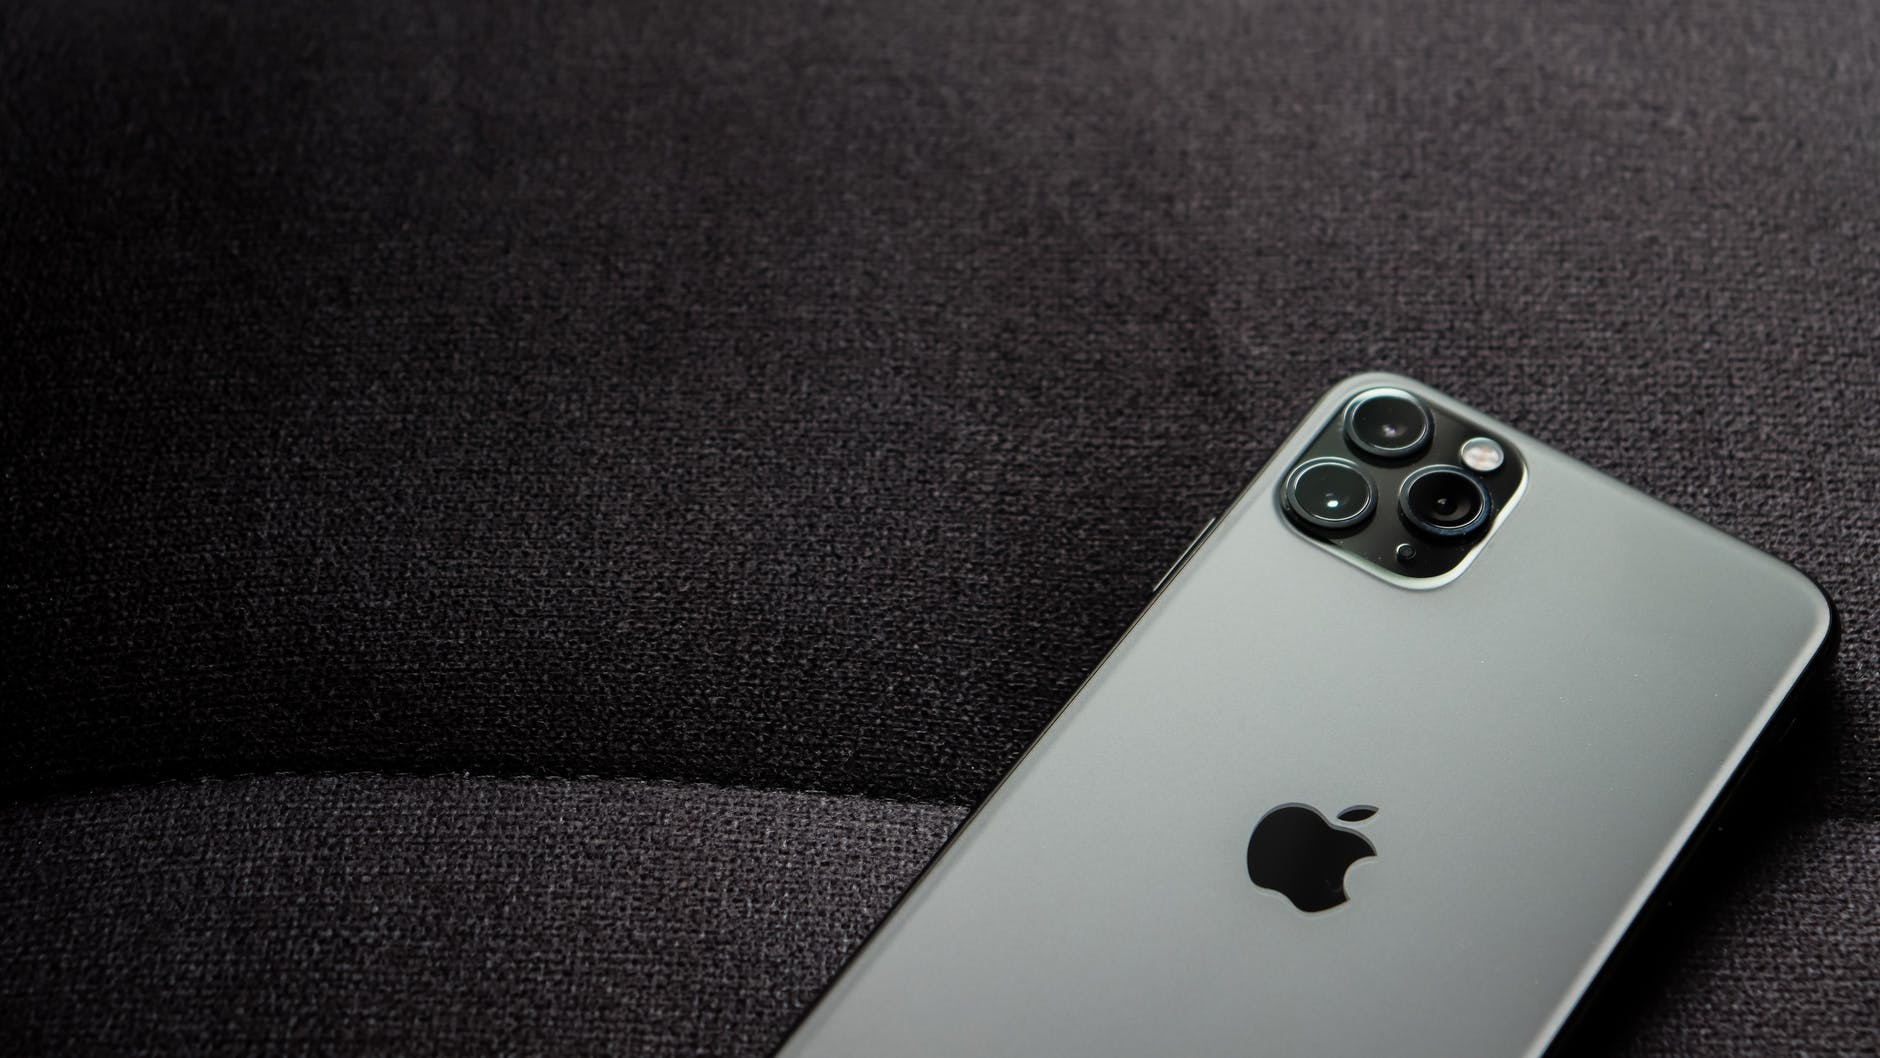 What Are Some Of The Best Camera Phones In The Market?